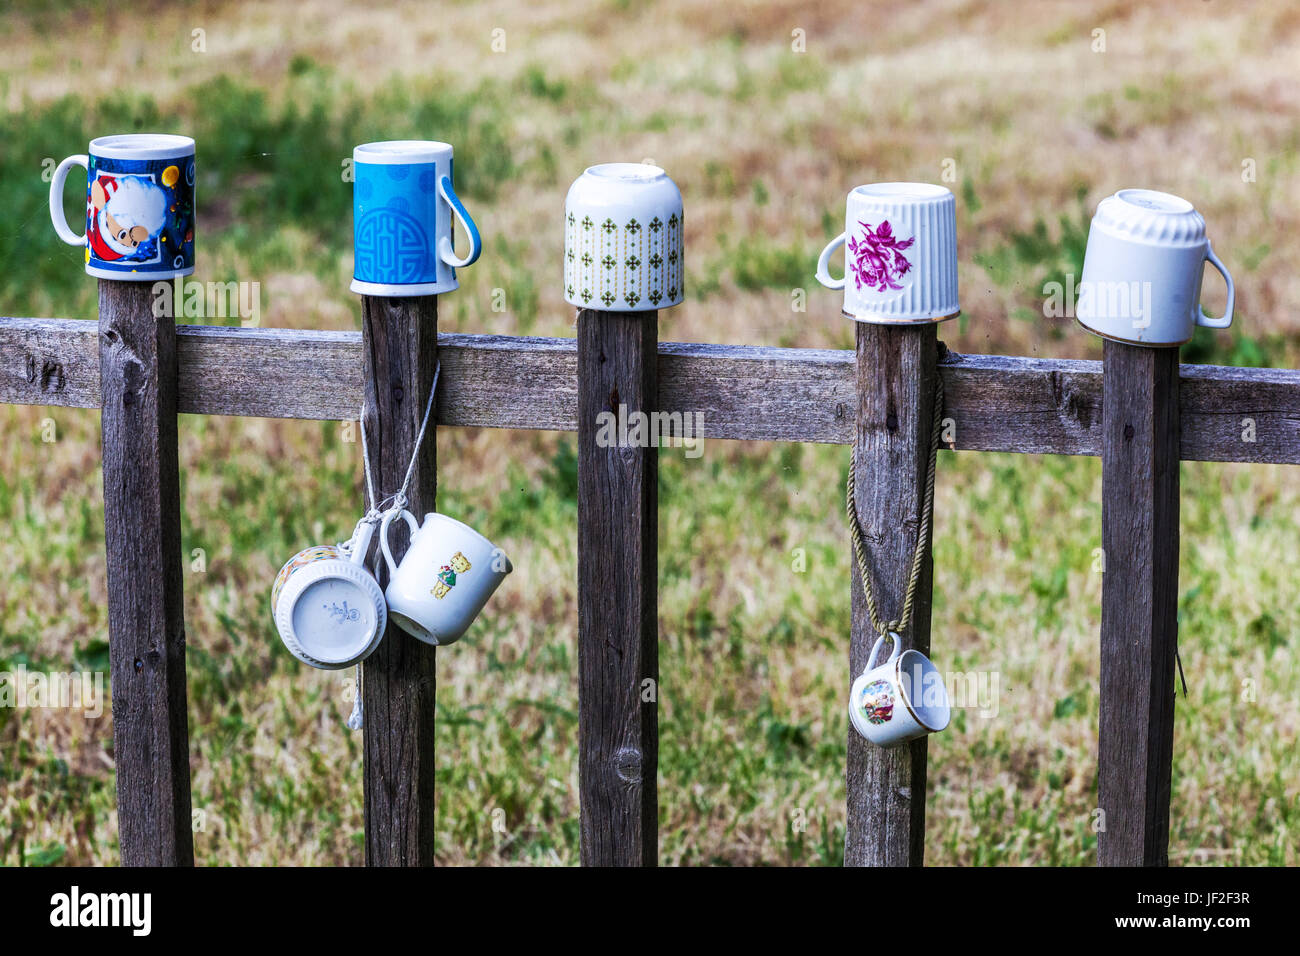 Ceramic cups hanging on the wooden fence, Drying rack, Czech Republic - Stock Image